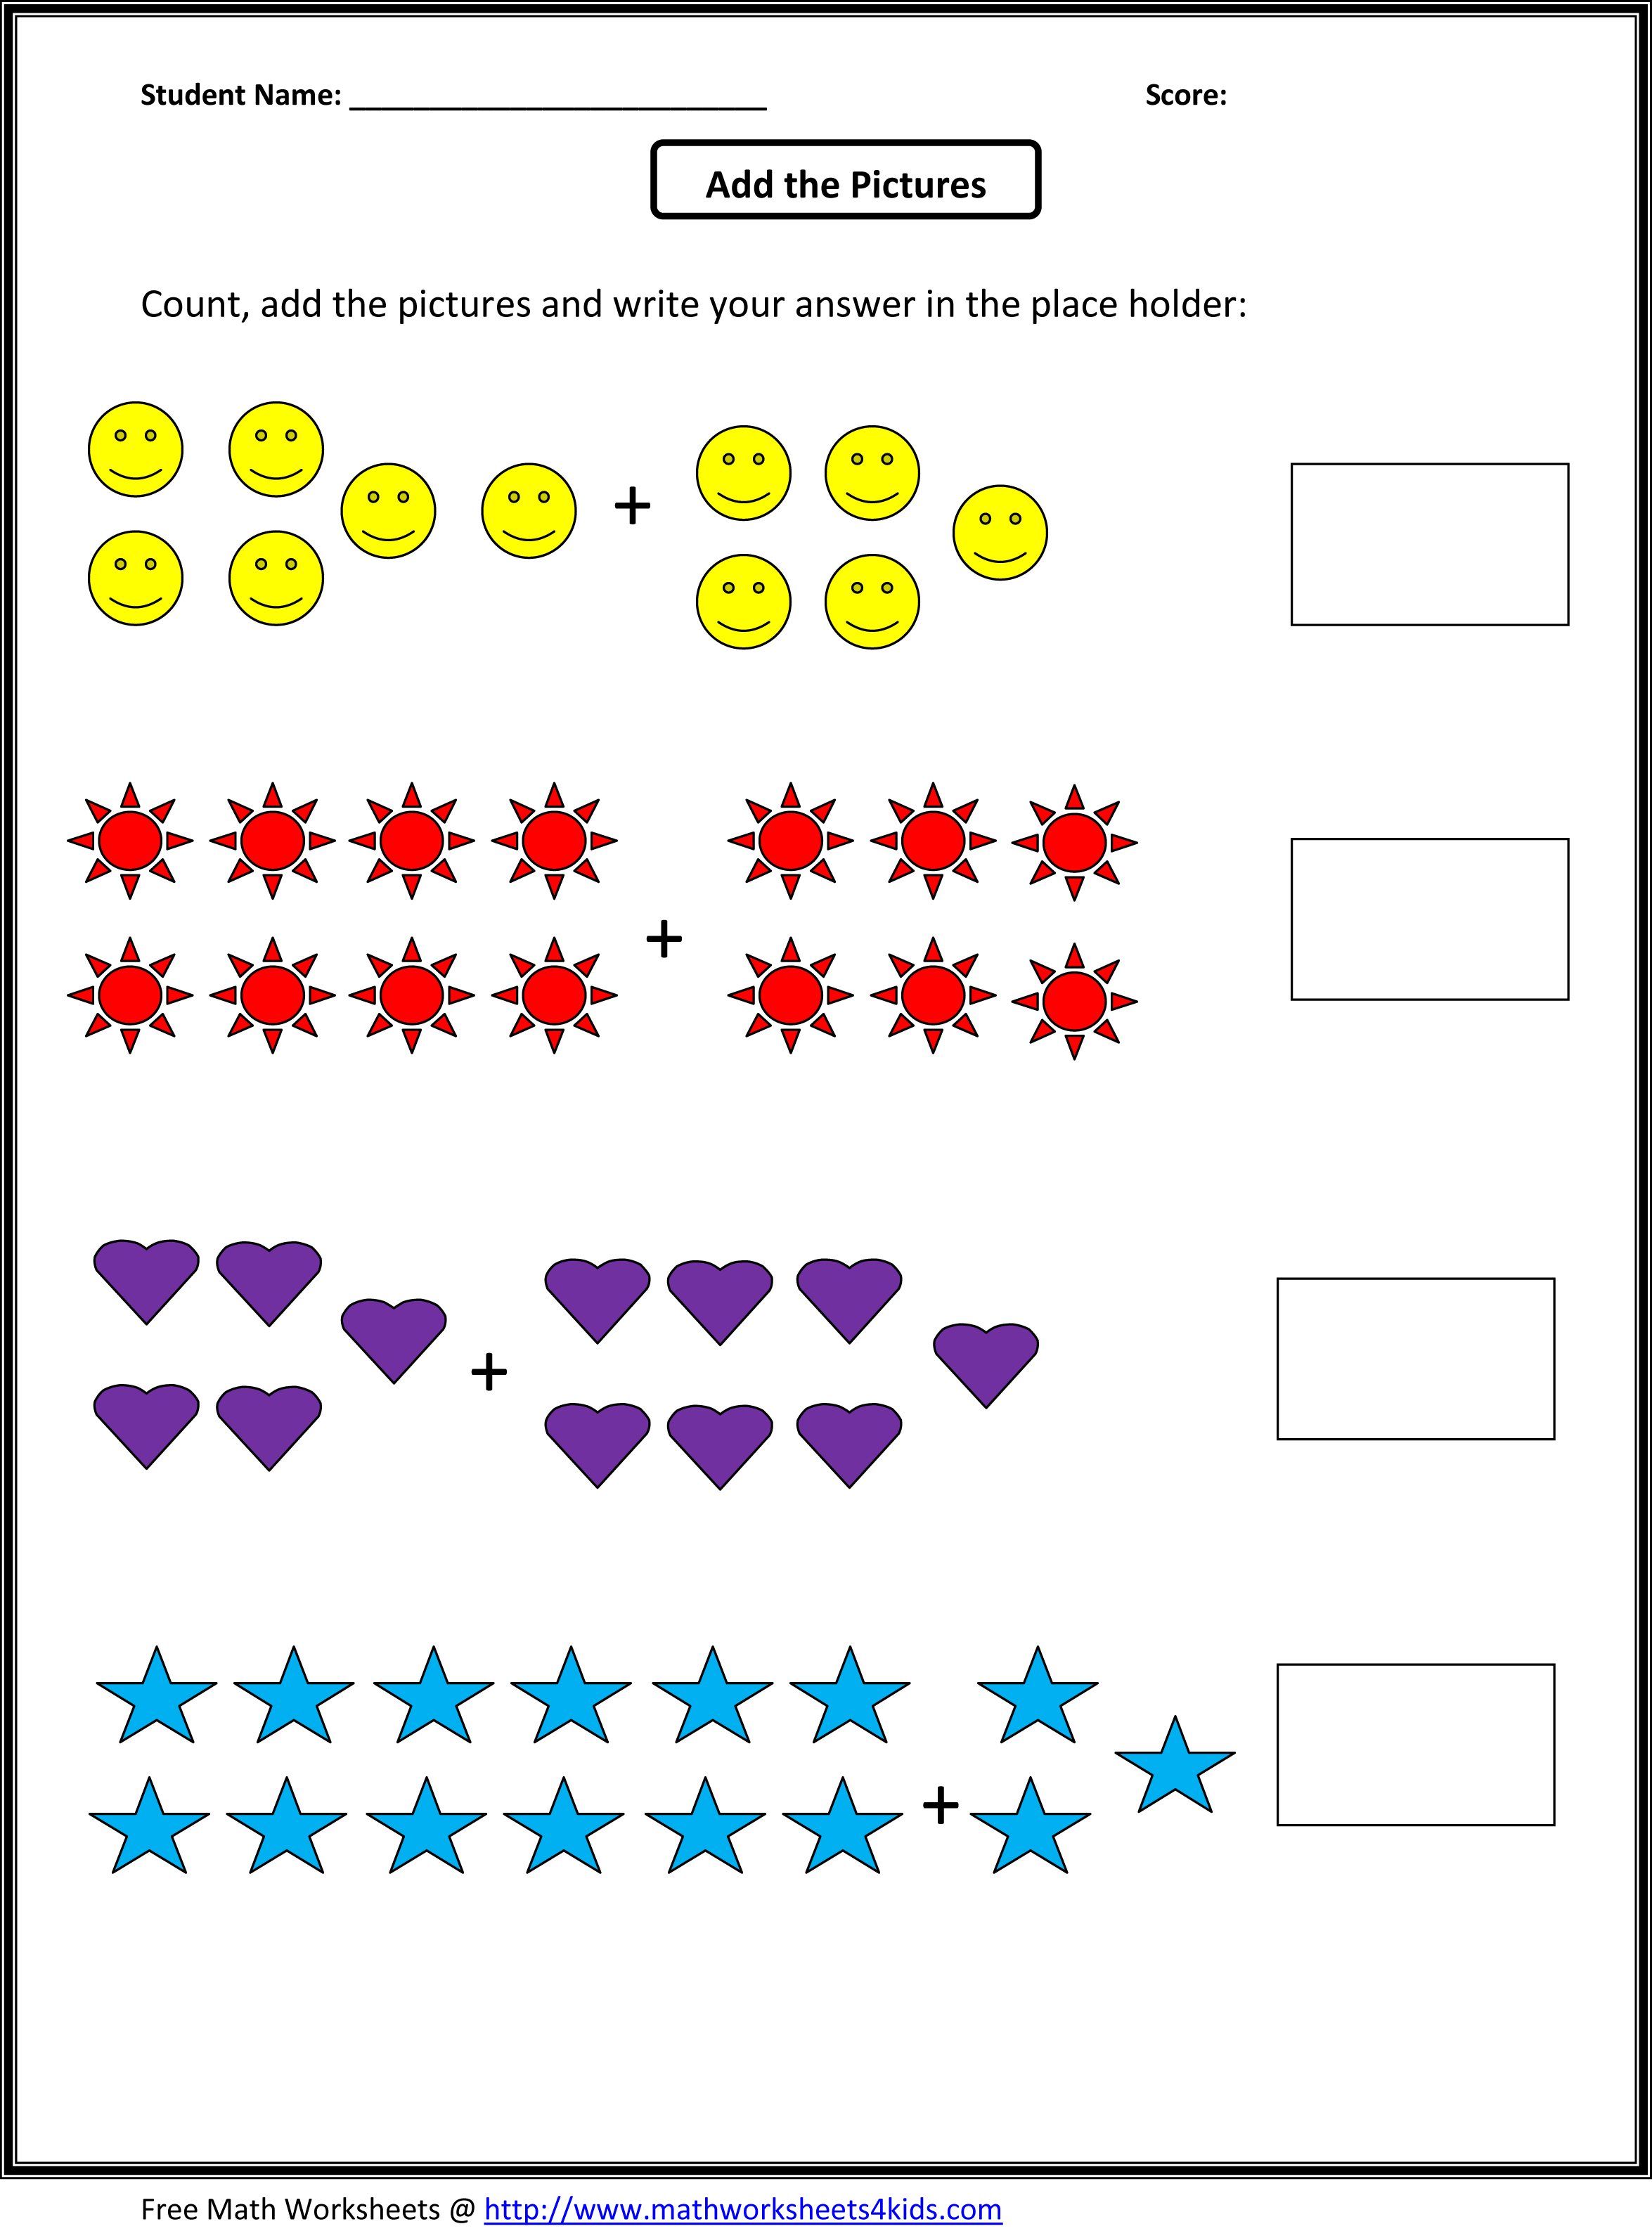 Proatmealus  Sweet Grade  Maths Worksheet  Reocurent With Foxy Math Worksheets For St Grade Free  Reocurent With Alluring Tracing The Alphabet Worksheets For Preschool Also Find A Word Printable Worksheets In Addition Adjectives Ks Worksheet And Math Worksheets For Grade  Printable As Well As Th Grade Grammar Worksheets Printable Additionally Os Map Symbols Worksheet From Reocurentcom With Proatmealus  Foxy Grade  Maths Worksheet  Reocurent With Alluring Math Worksheets For St Grade Free  Reocurent And Sweet Tracing The Alphabet Worksheets For Preschool Also Find A Word Printable Worksheets In Addition Adjectives Ks Worksheet From Reocurentcom